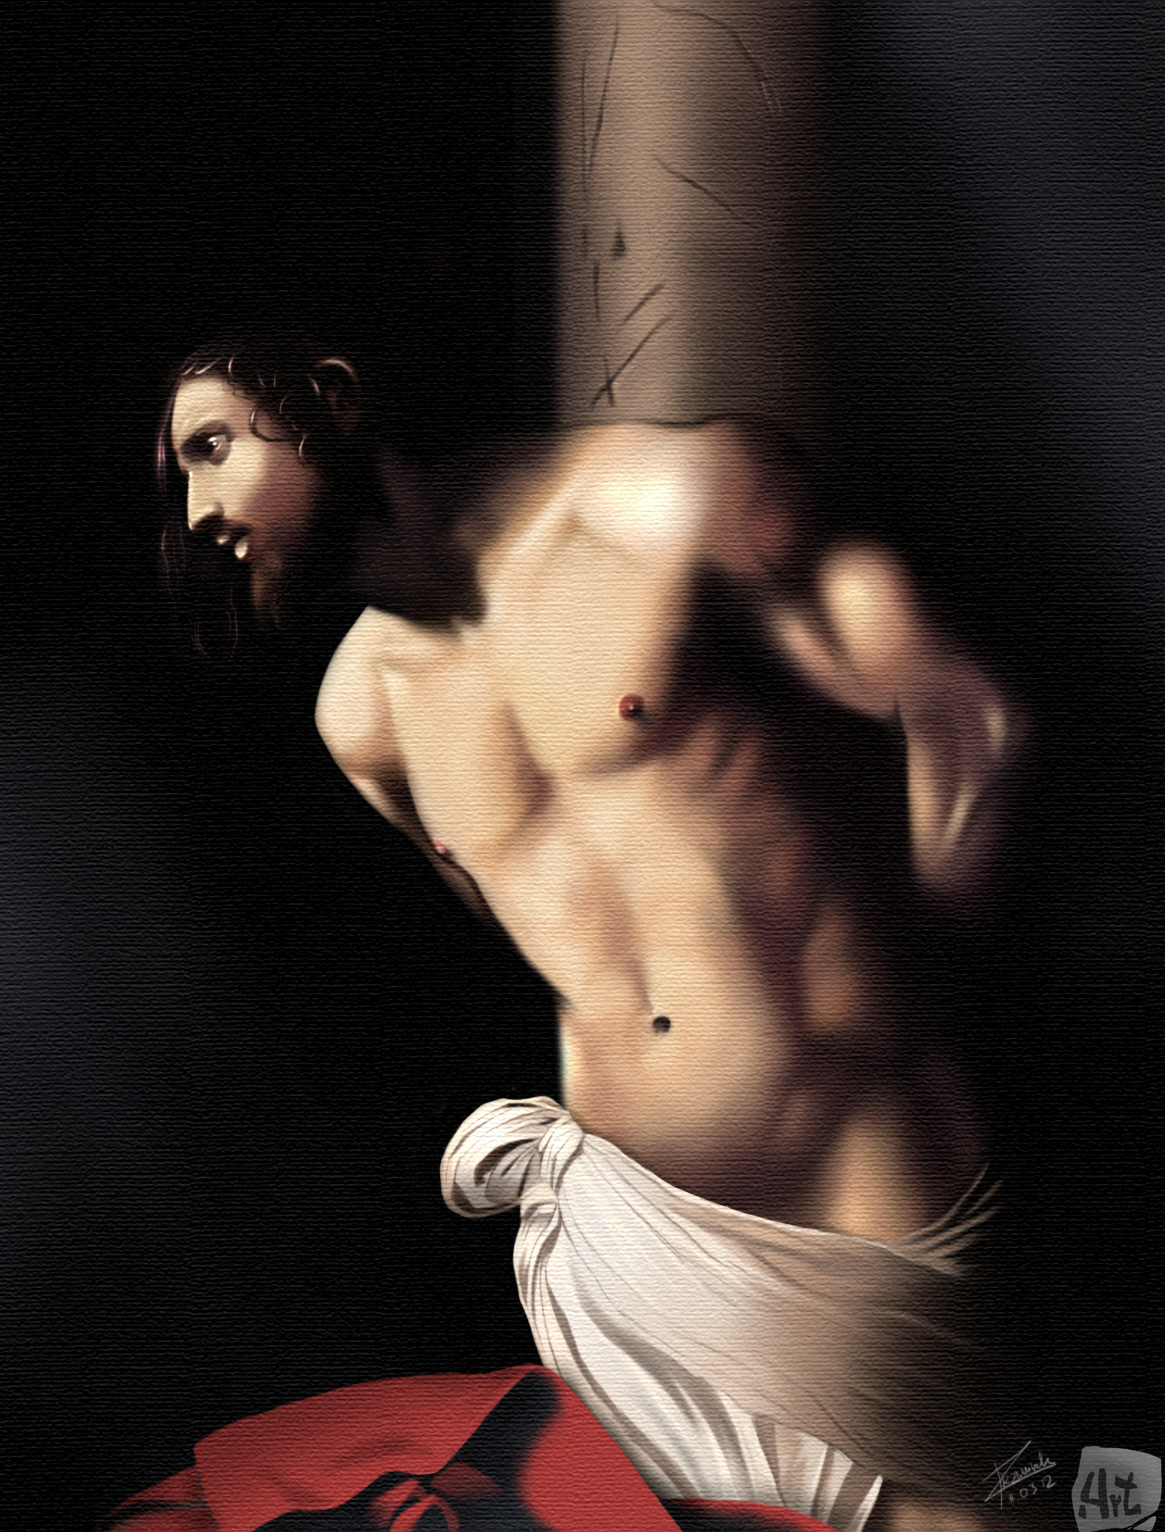 caravaggio__flagellation_of_christ_by_4rtist-d4sjt1s